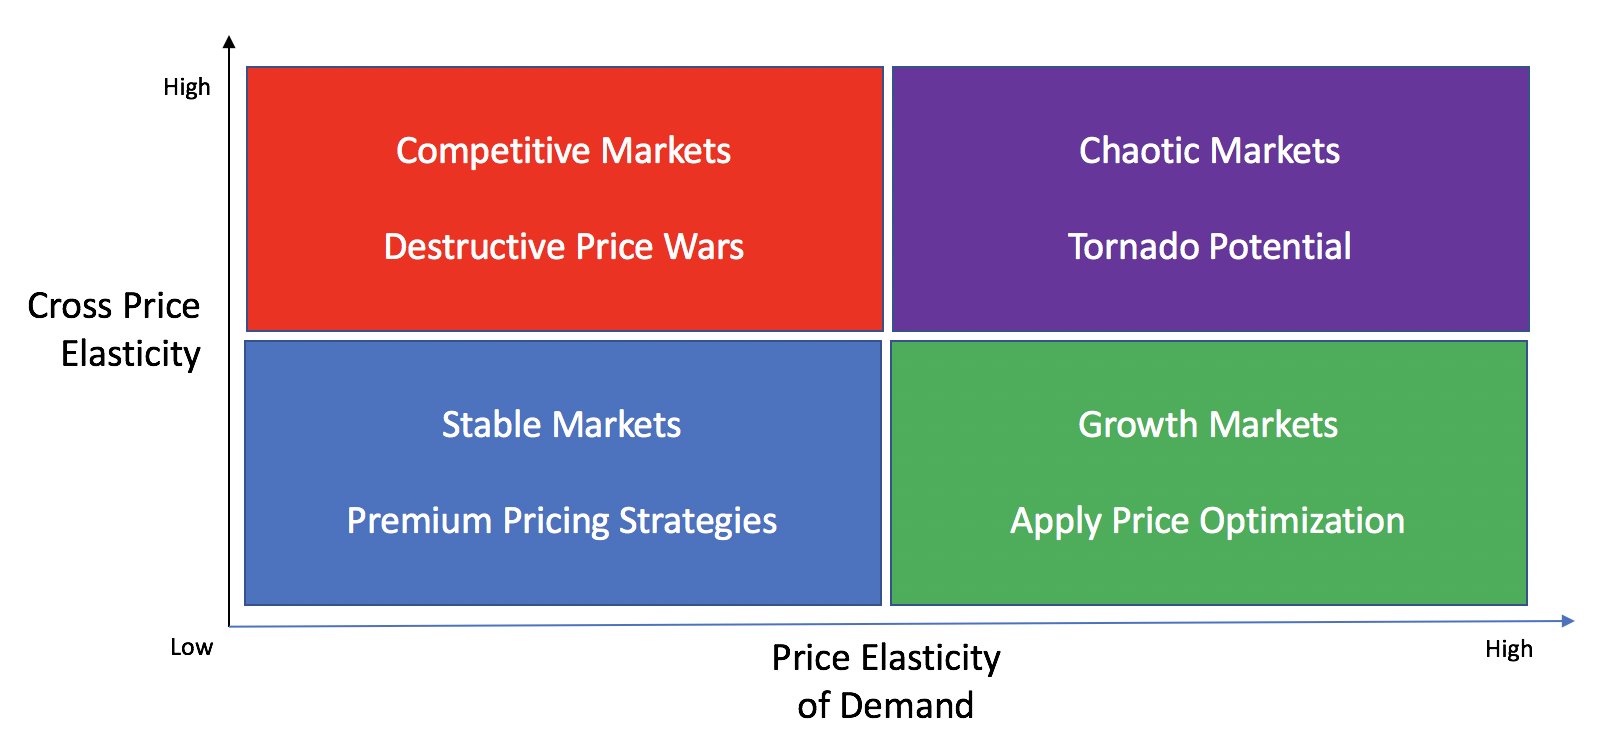 Interactions between cross-price elasticity and price elasticity of demand